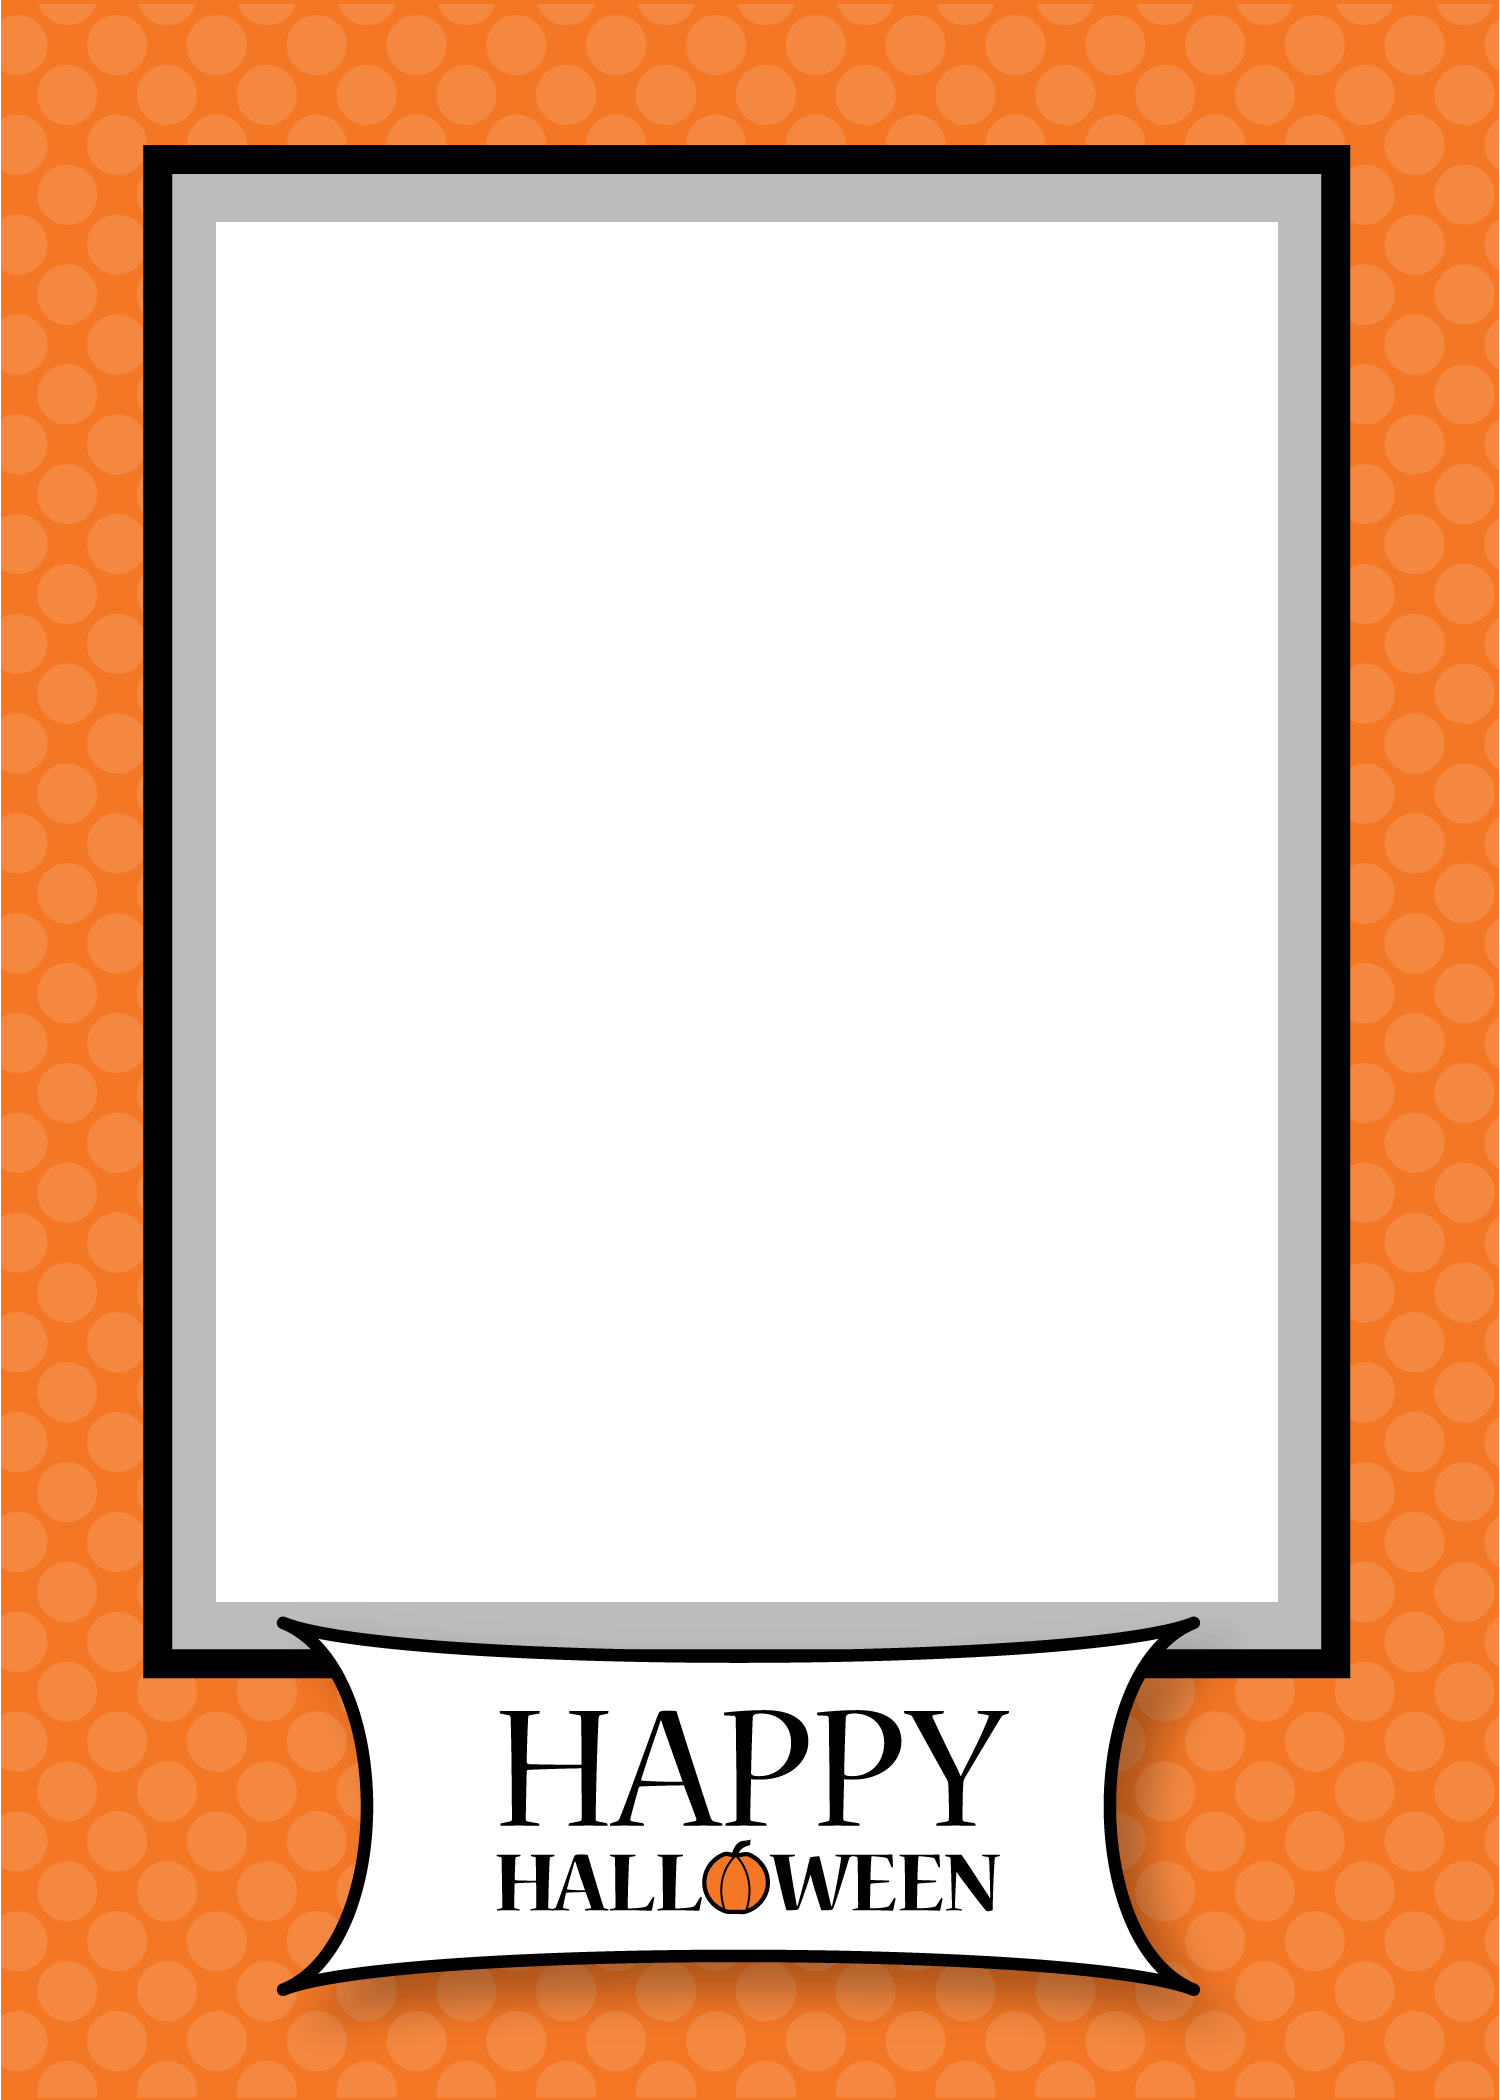 graphic regarding Free Printable Halloween Borders identify 11 Photoshop Body PNG For Halloween Pics - Clear